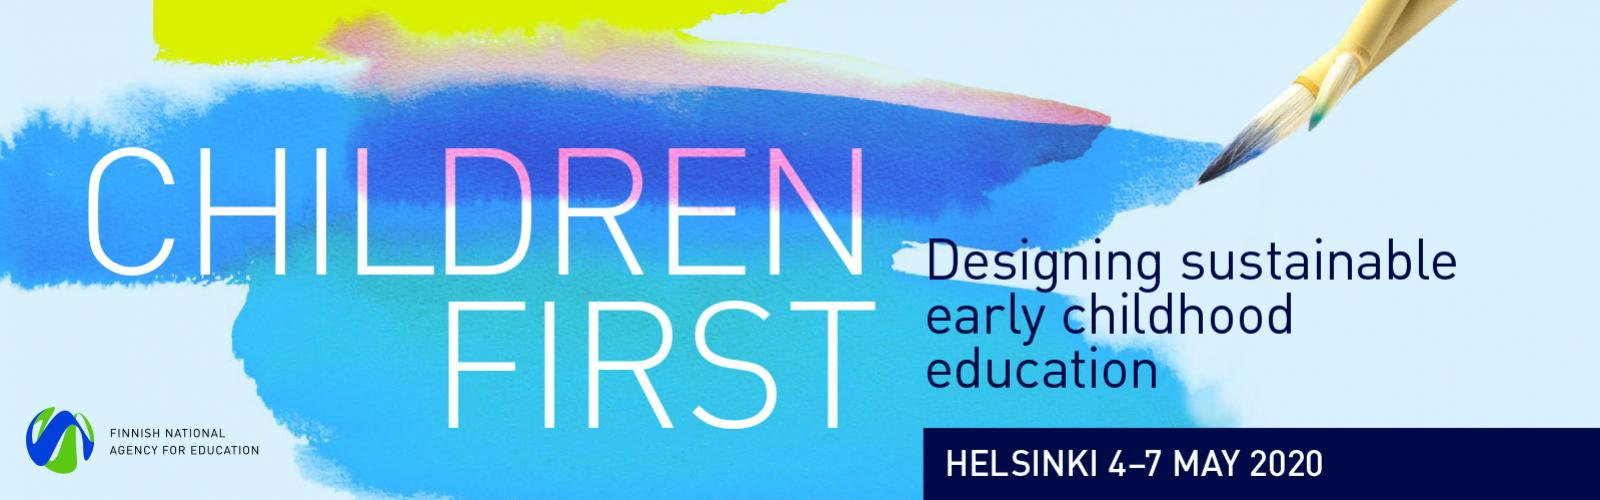 Children first banner